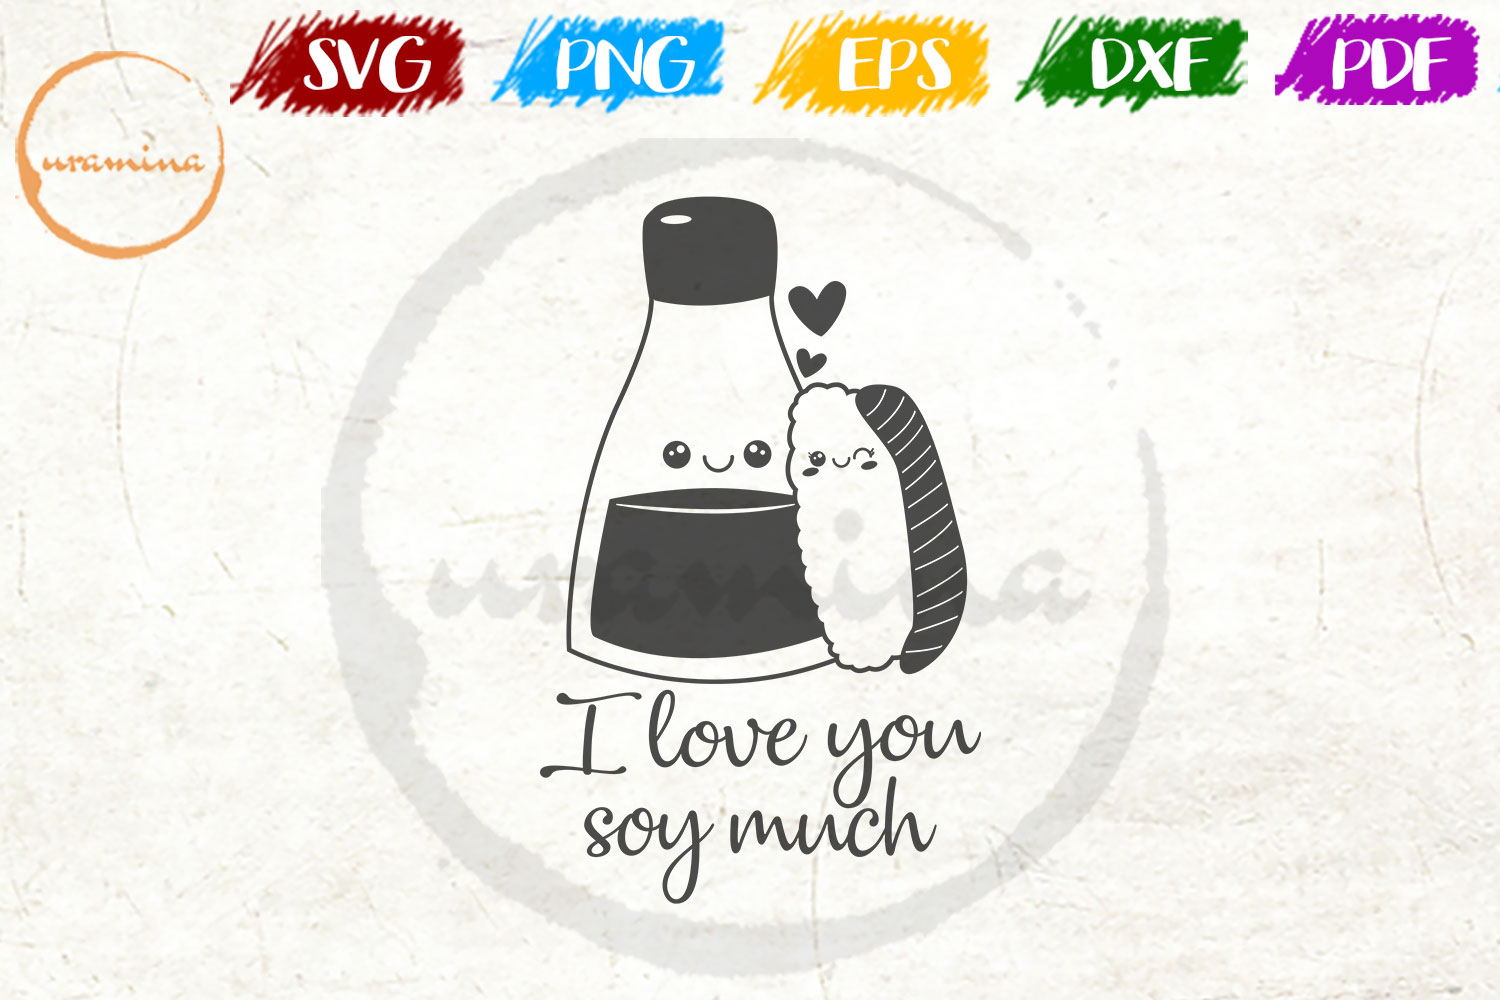 Download Free I Love You Soy Much Graphic By Uramina Creative Fabrica for Cricut Explore, Silhouette and other cutting machines.